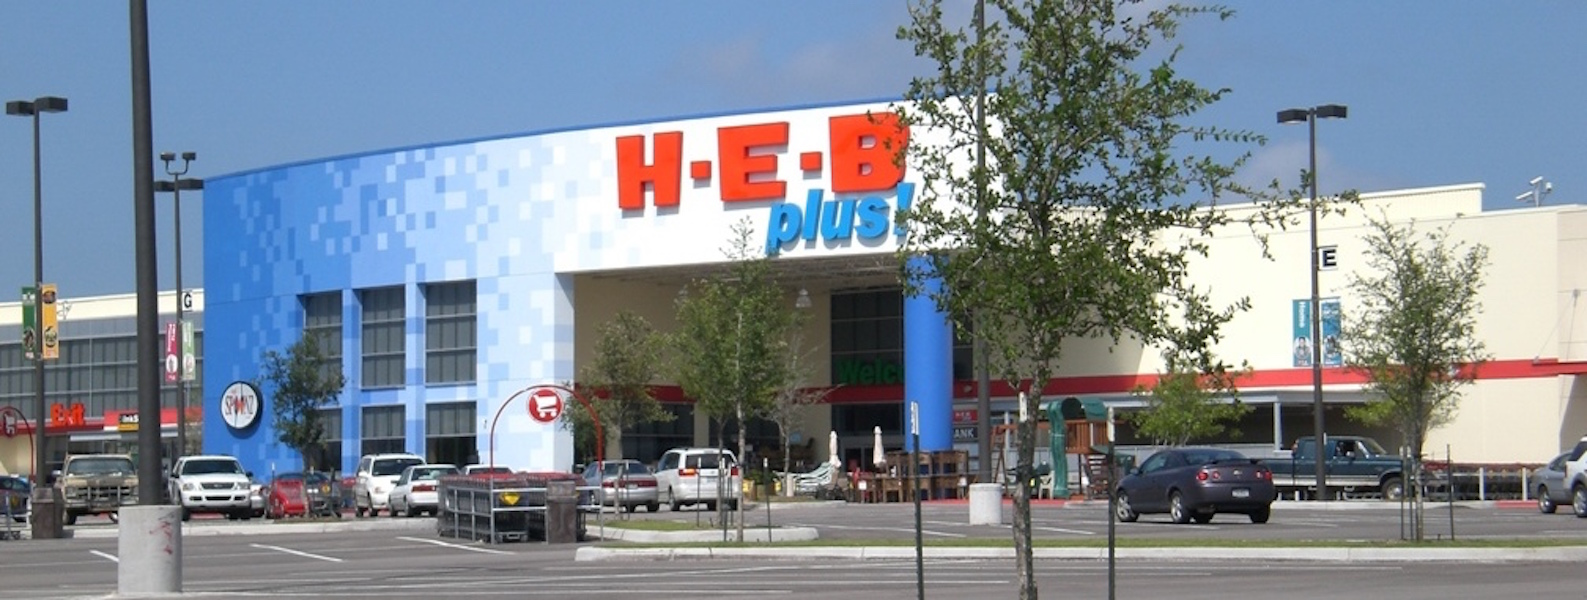 h-e-b largest private employer texas